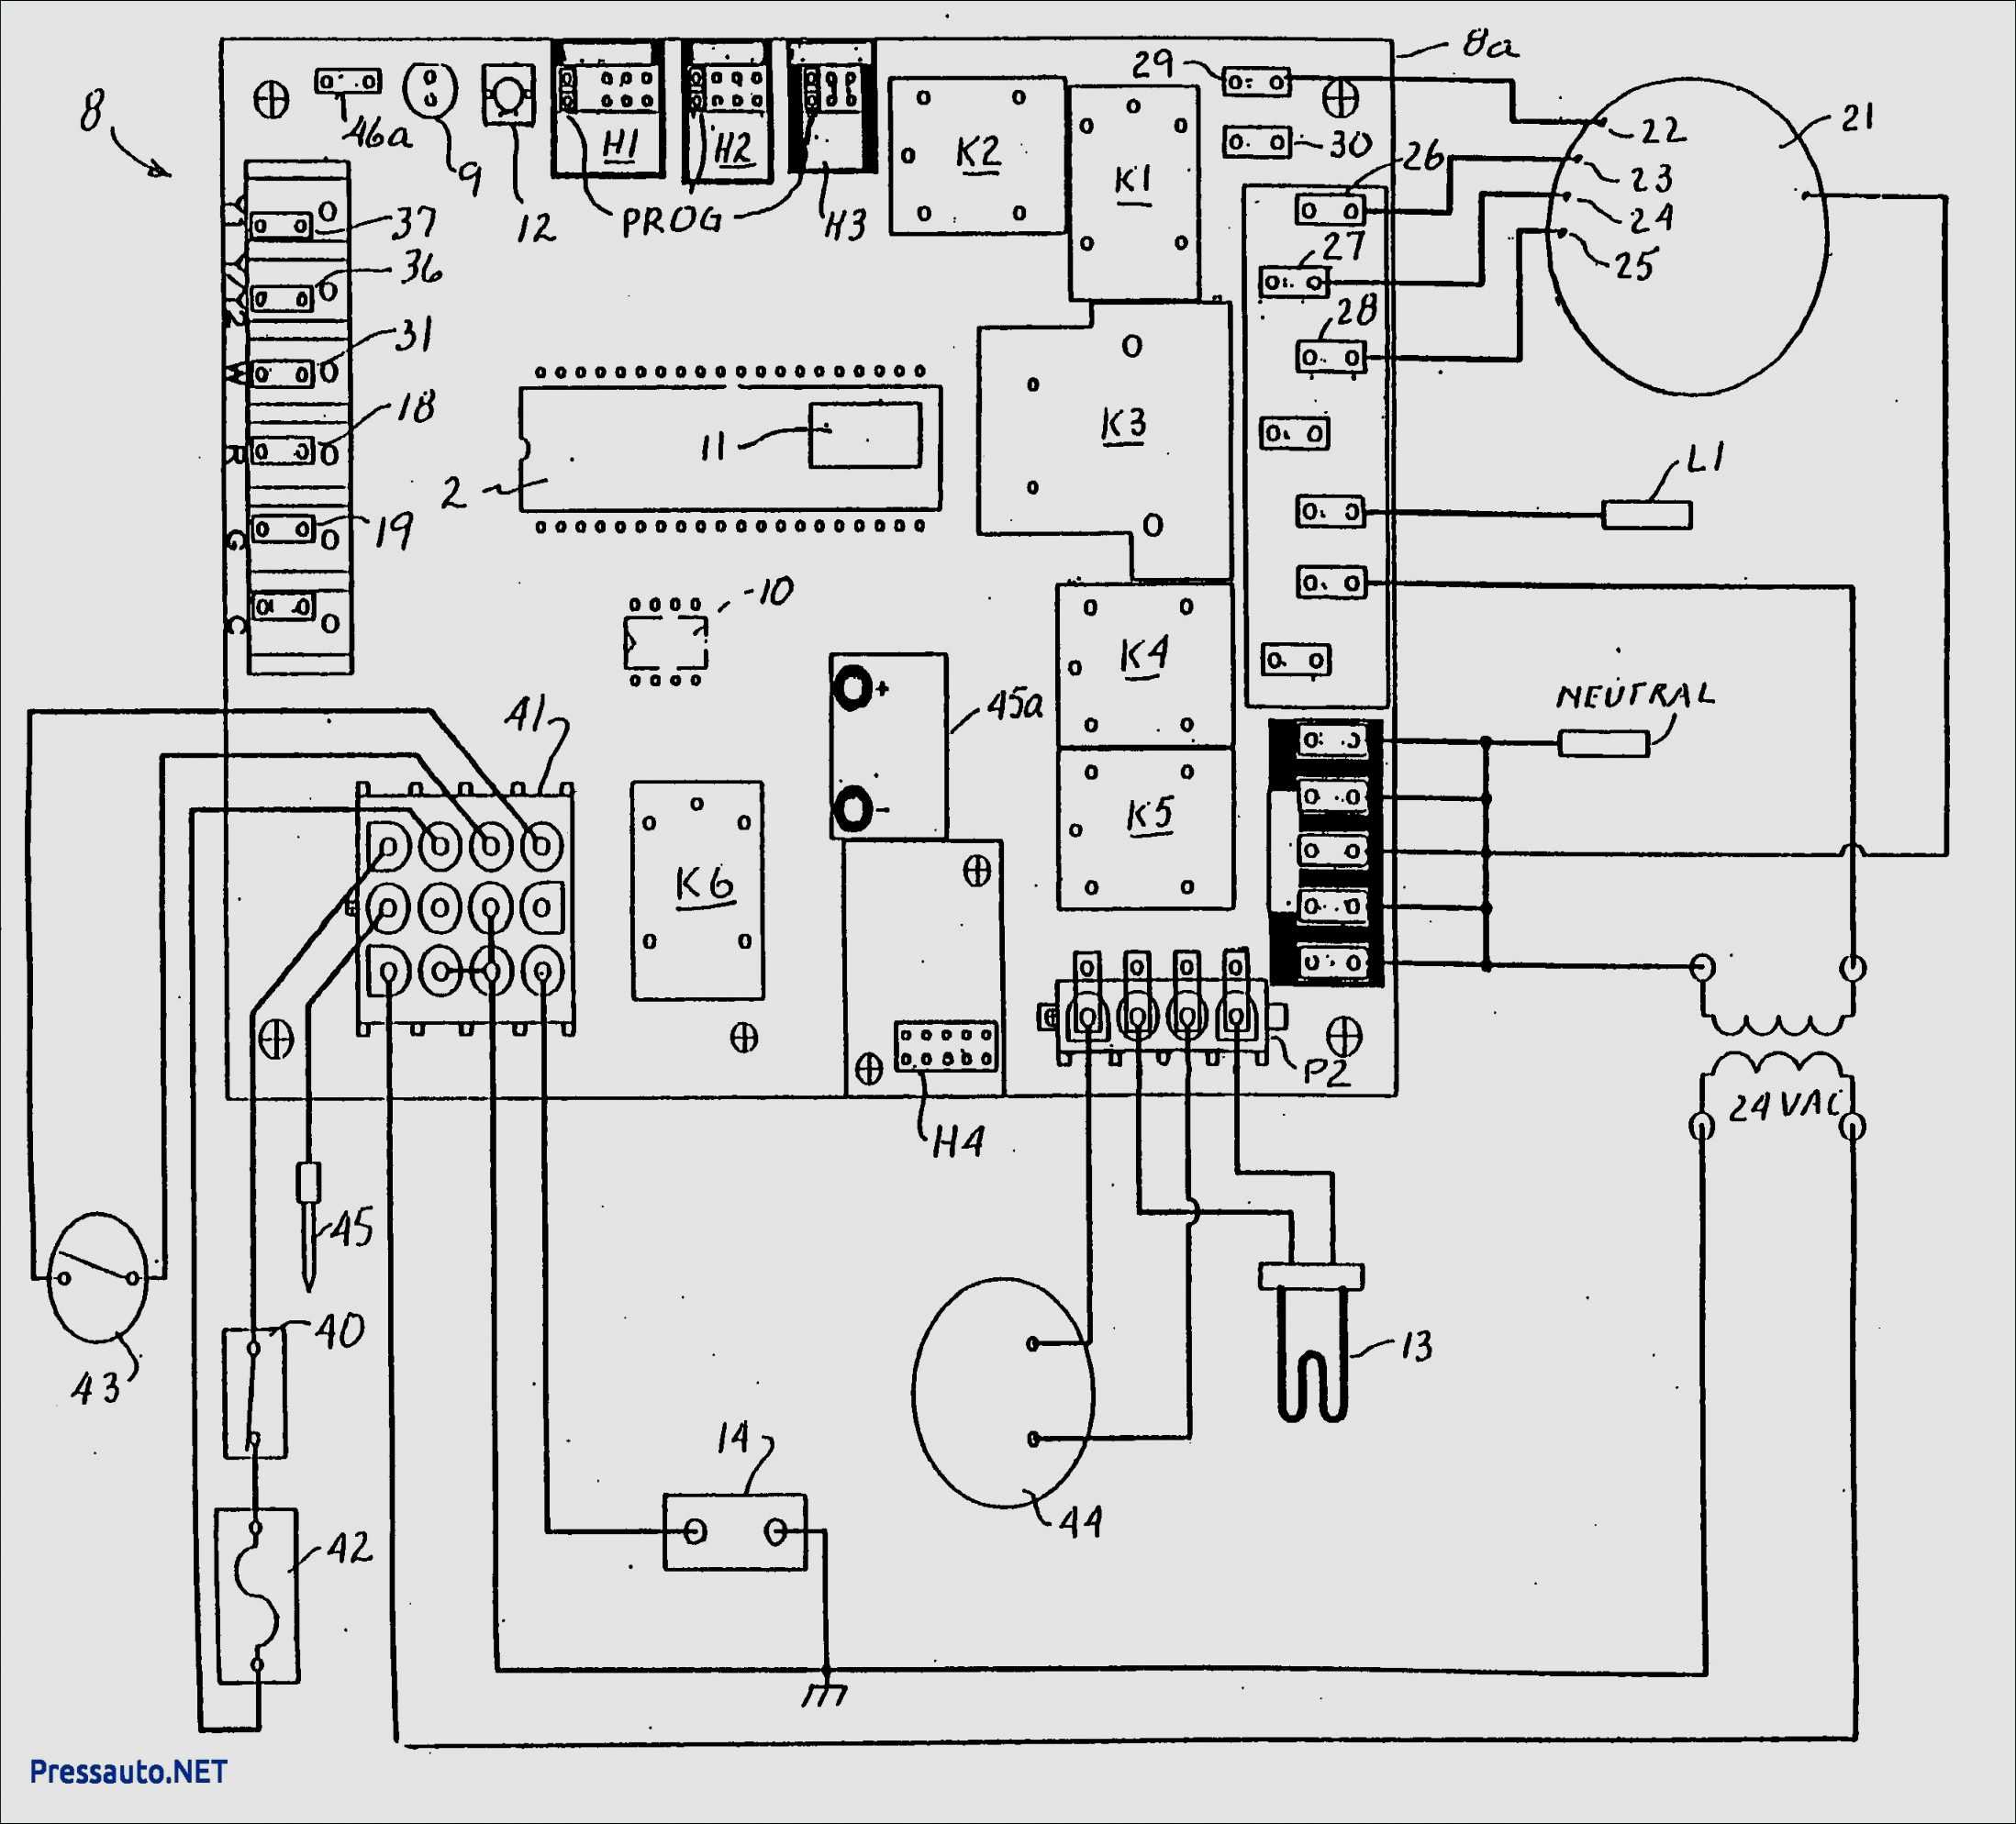 York Heat Pump Wiring Diagram Heat Pump Wiring Diagram Awesome Nest - Wiring Diagram For Heat Pumps For Nest